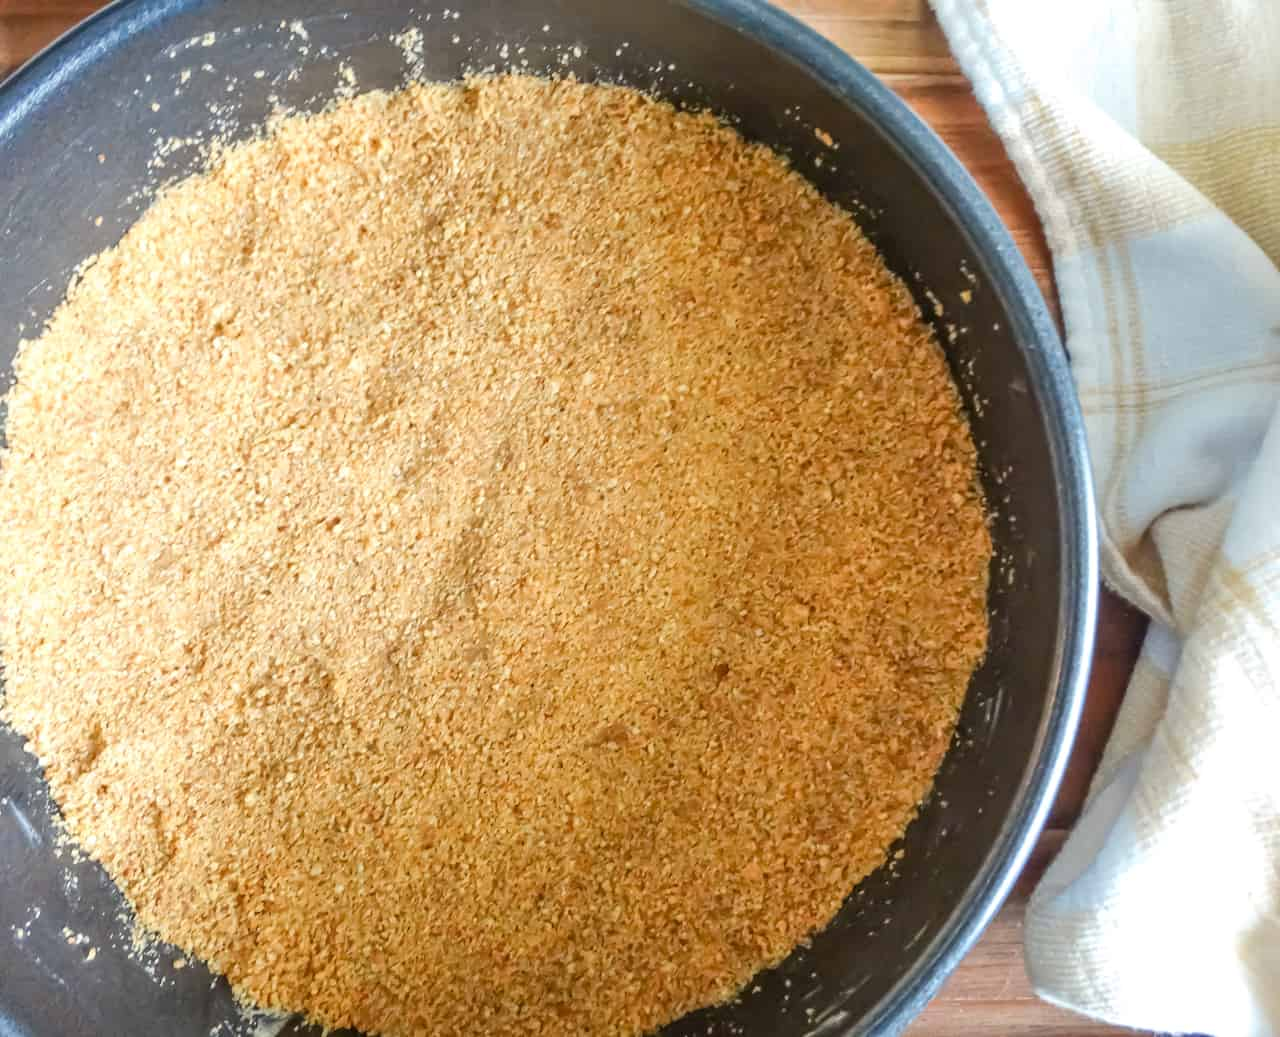 nutmeg spiced graham cracker crust for cheesecake in a pan